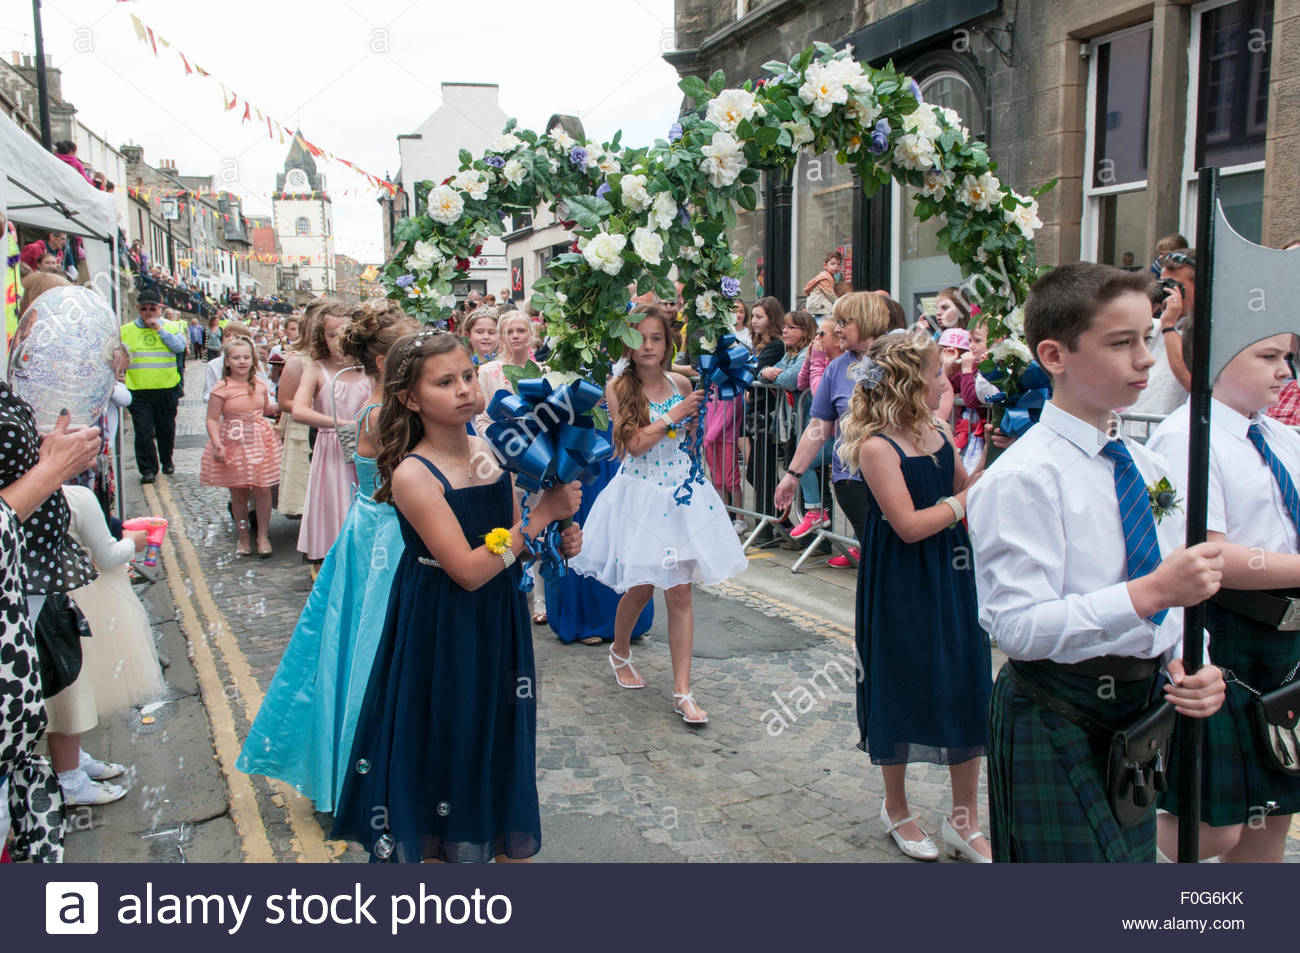 South Queensferry, UK. August 15, 2015. The Bower Girls make their way along the High Street. QueensferryÕs - Stock Image